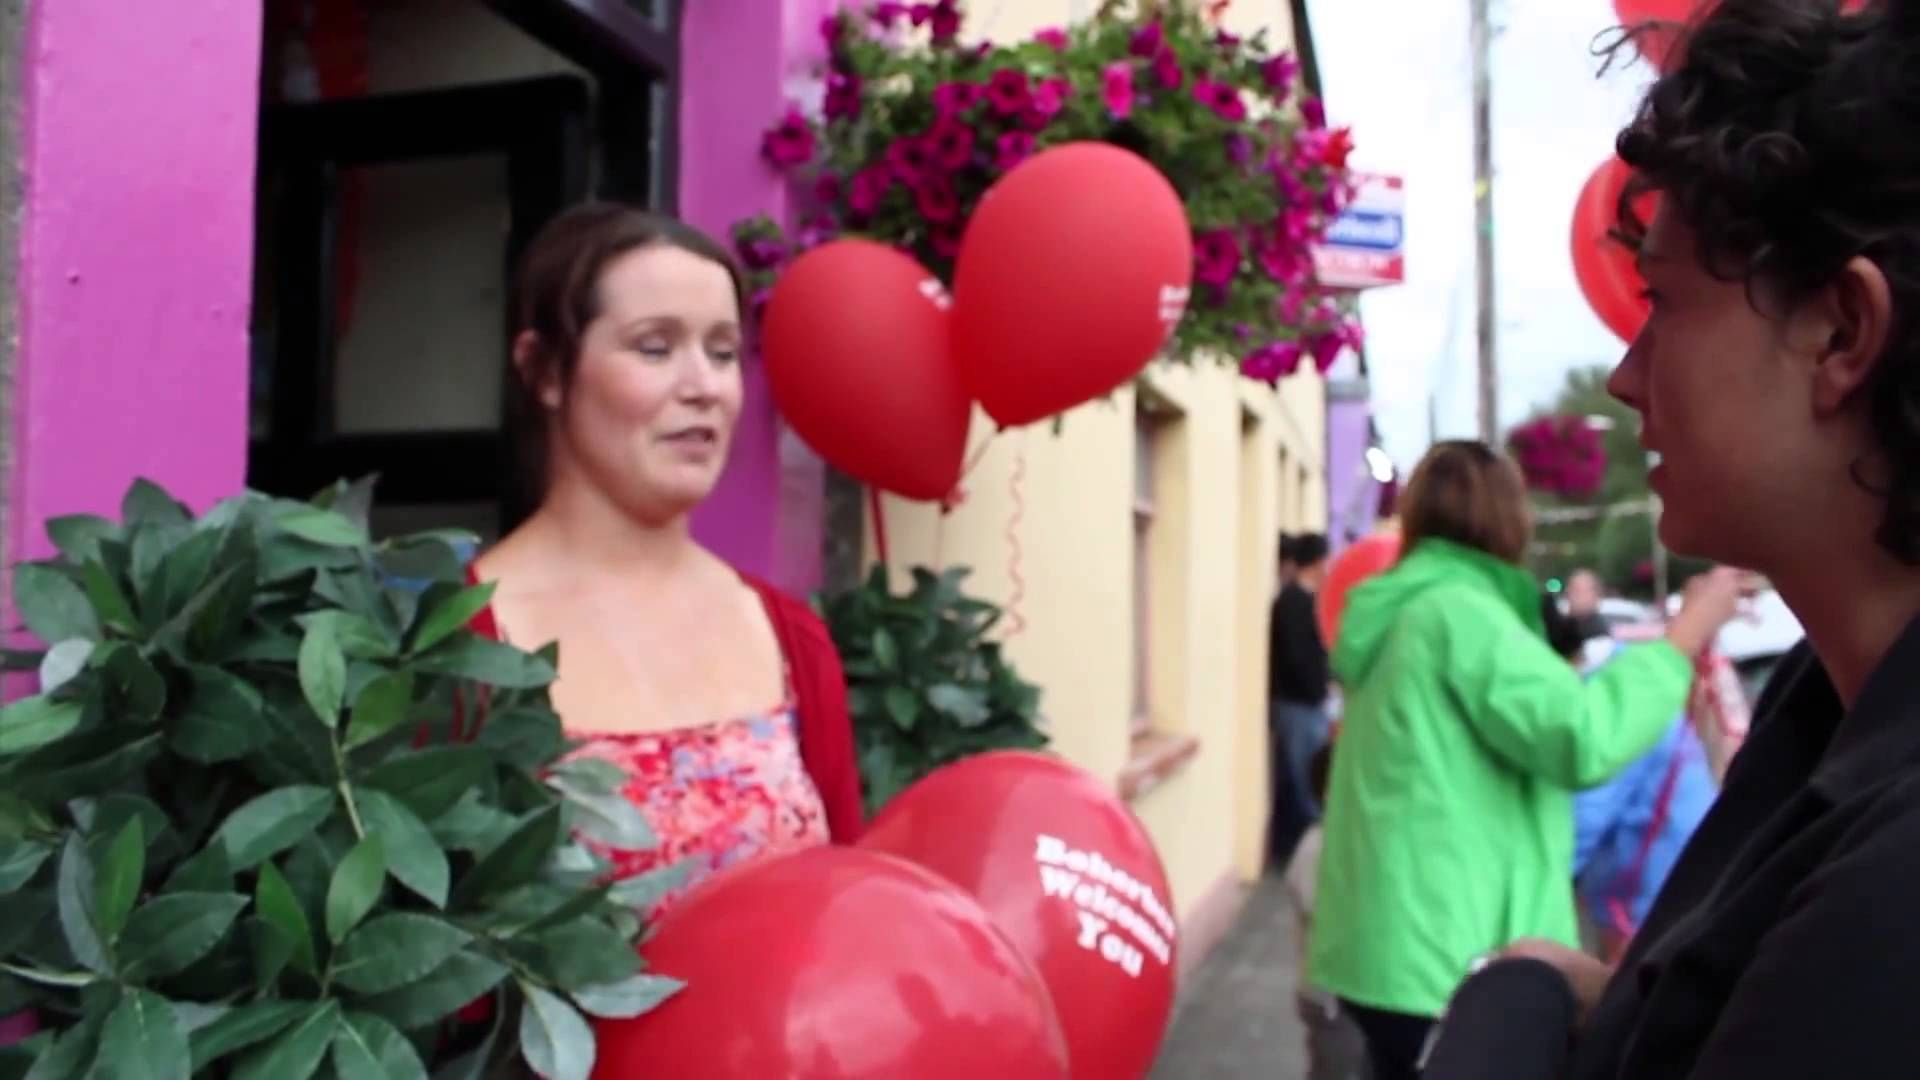 Colourful Guide To The Rose Of Tralee Festival Kerry The Rose Of Tralee Rose Hotel Tralee